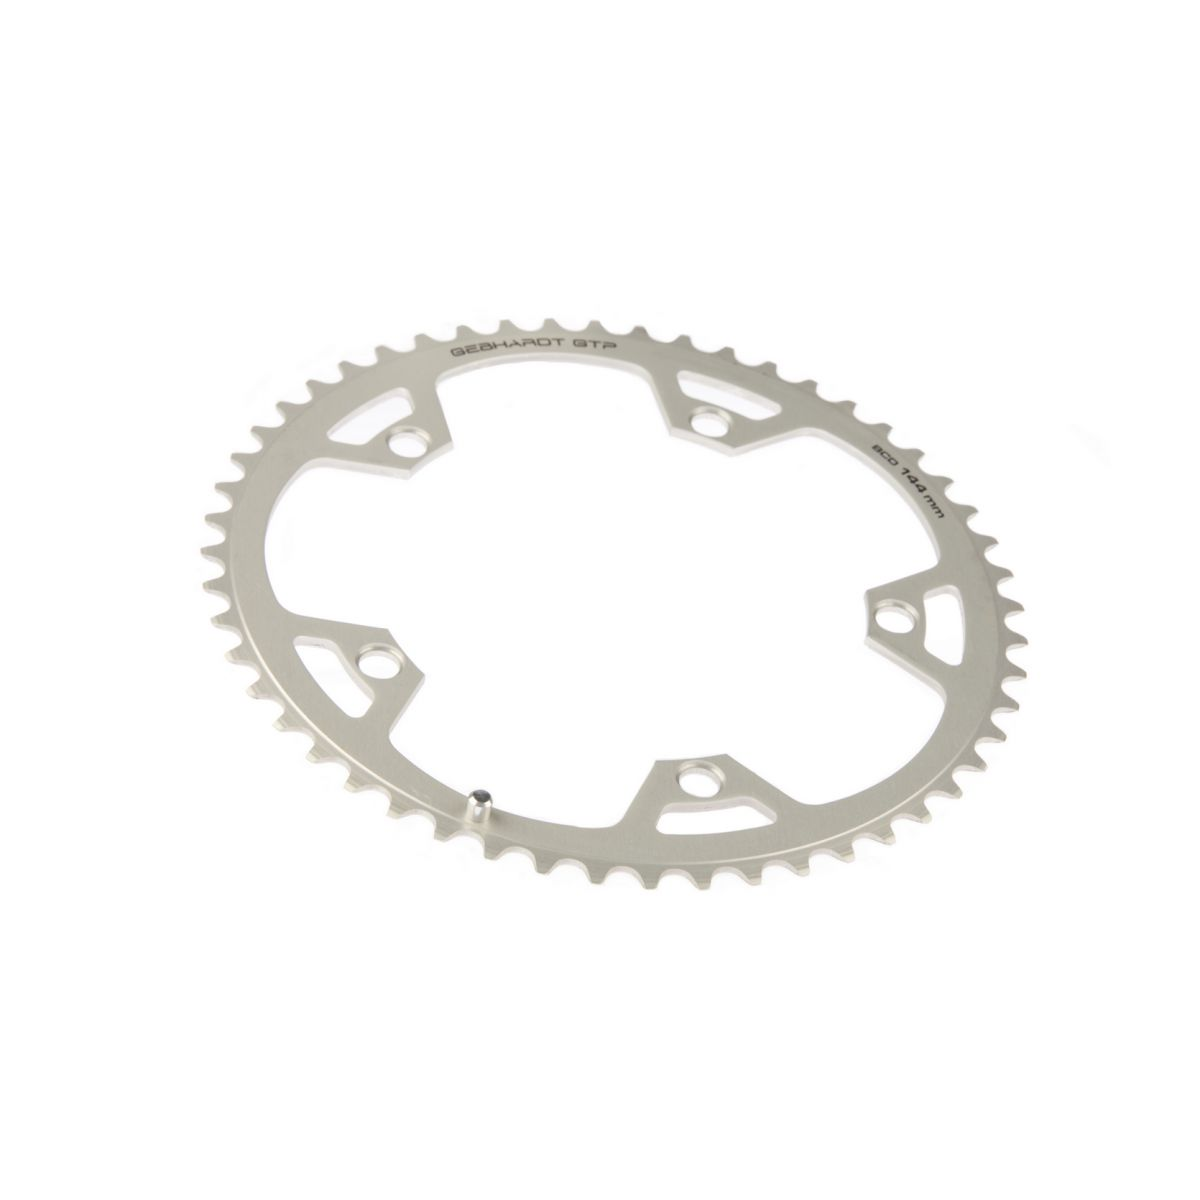 gebhardt chainring classic bcd 144 mm 5hole 44t silver